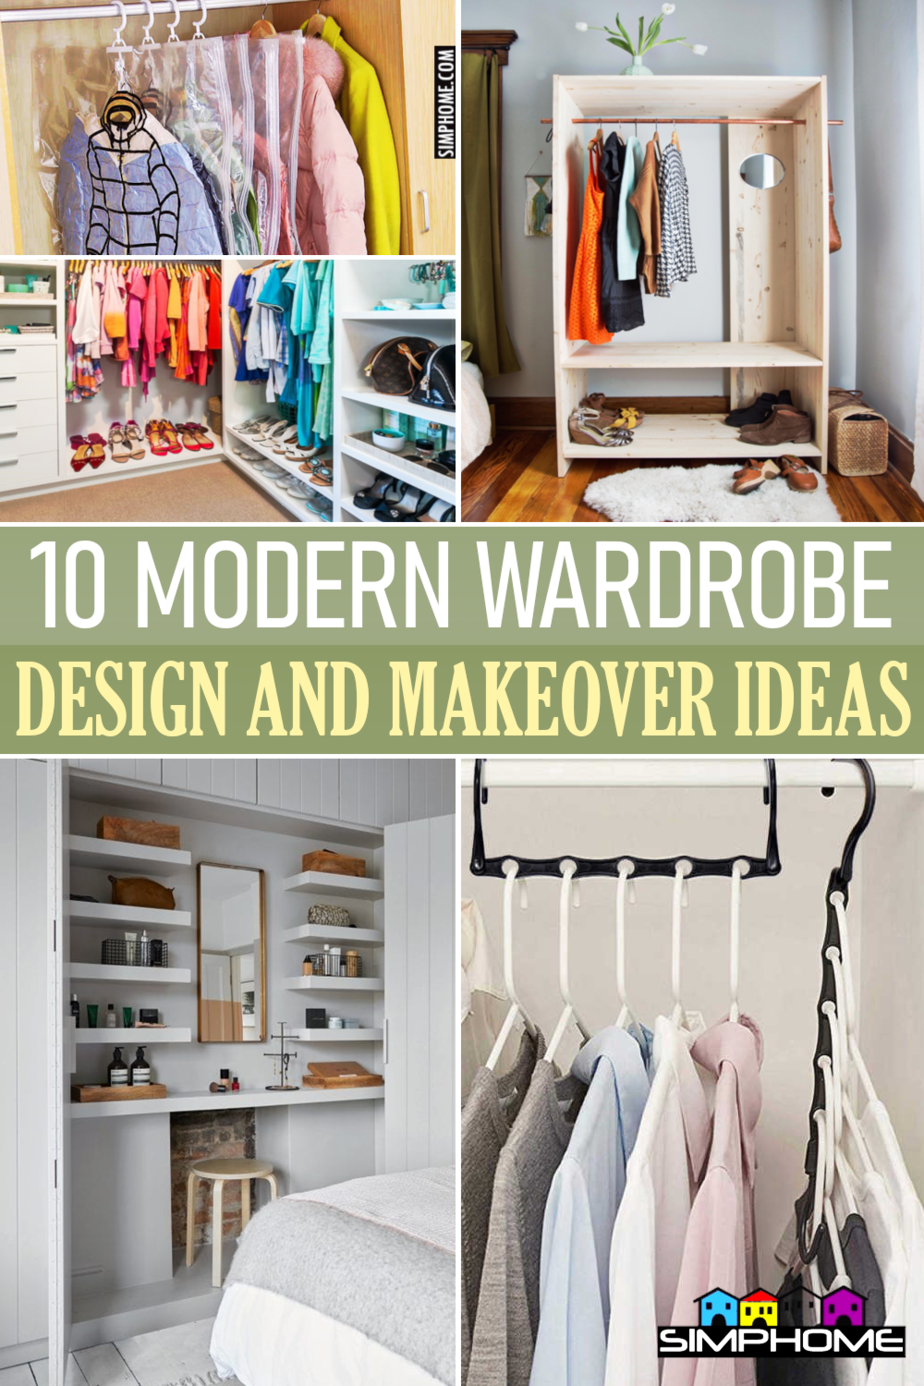 10 Modern Wardrobe Design and Makeover Ideas via Simphome.comFeatured